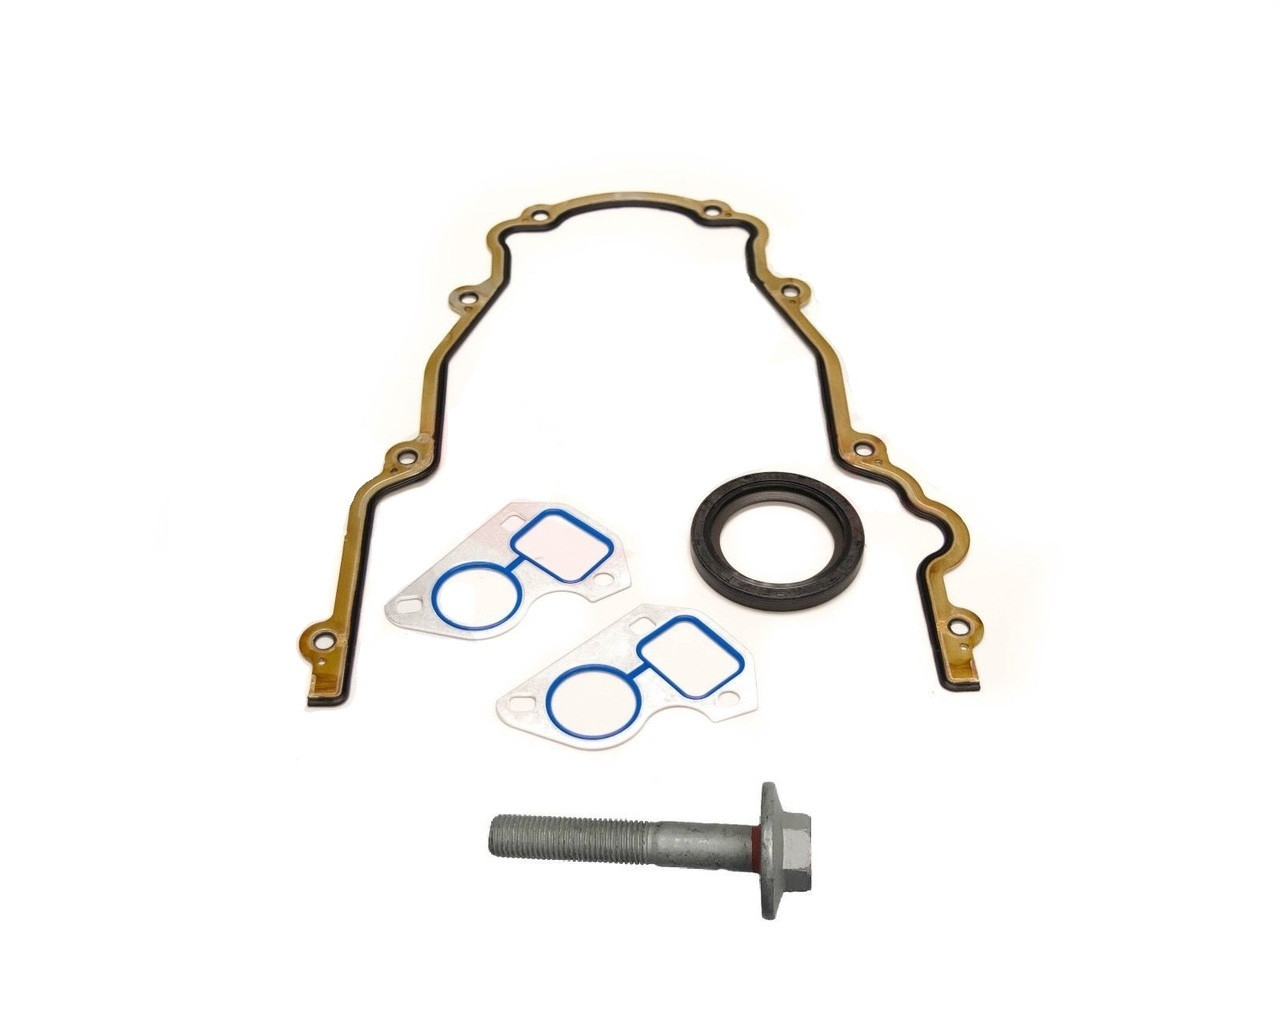 Texas Speed TSP Cleetus McFarland Dumpster Fire Cam 5.3 5.7 6.0 LS1 LS6 LS2 Kit Includes Spring Kit with Pushrods and Gasket Kit